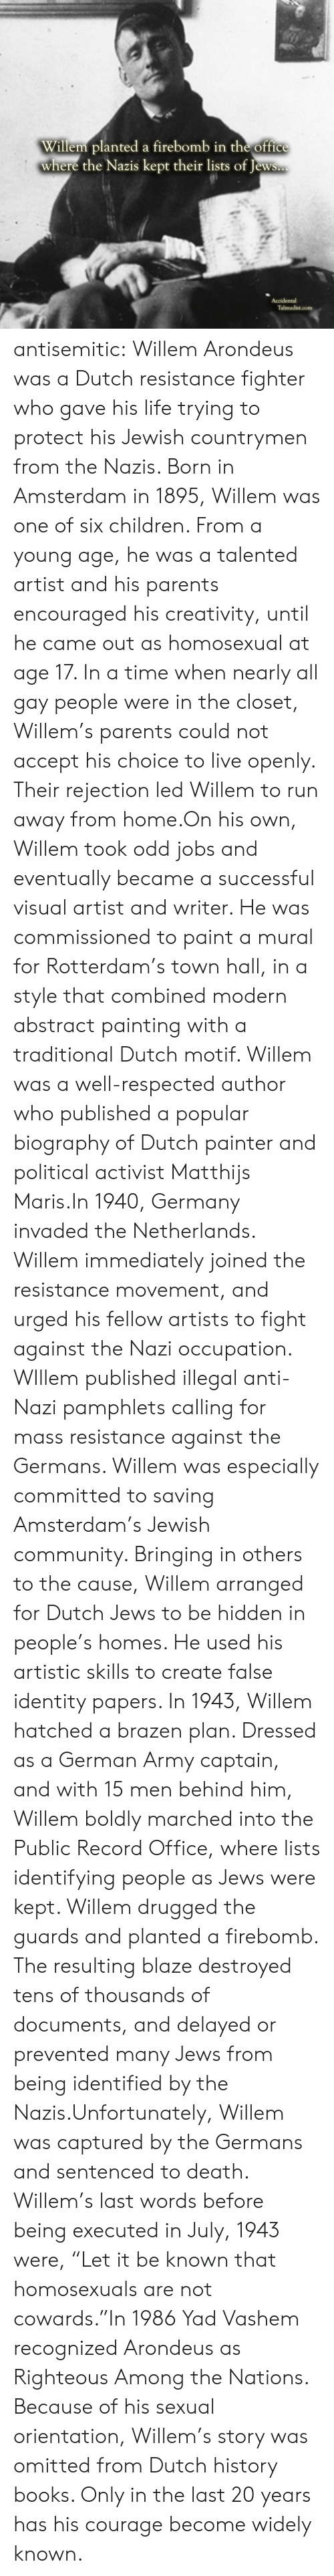 """german army: Willem planted a firebomb in the office  where the Nazis kept their lists of Jews..  Accidental  Talmudist.com antisemitic:  Willem Arondeus was a Dutch resistance fighter who gave his life trying to protect his Jewish countrymen from the Nazis. Born in Amsterdam in 1895, Willem was one of six children. From a young age, he was a talented artist and his parents encouraged his creativity, until he came out as homosexual at age 17. In a time when nearly all gay people were in the closet, Willem's parents could not accept his choice to live openly. Their rejection led Willem to run away from home.On his own, Willem took odd jobs and eventually became a successful visual artist and writer. He was commissioned to paint a mural for Rotterdam's town hall, in a style that combined modern abstract painting with a traditional Dutch motif. Willem was a well-respected author who published a popular biography of Dutch painter and political activist Matthijs Maris.In 1940, Germany invaded the Netherlands. Willem immediately joined the resistance movement, and urged his fellow artists to fight against the Nazi occupation. WIllem published illegal anti-Nazi pamphlets calling for mass resistance against the Germans. Willem was especially committed to saving Amsterdam's Jewish community. Bringing in others to the cause, Willem arranged for Dutch Jews to be hidden in people's homes. He used his artistic skills to create false identity papers. In 1943, Willem hatched a brazen plan. Dressed as a German Army captain, and with 15 men behind him, Willem boldly marched into the Public Record Office, where lists identifying people as Jews were kept. Willem drugged the guards and planted a firebomb. The resulting blaze destroyed tens of thousands of documents, and delayed or prevented many Jews from being identified by the Nazis.Unfortunately, Willem was captured by the Germans and sentenced to death. Willem's last words before being executed in July, 1943 were, """"Let it be known """